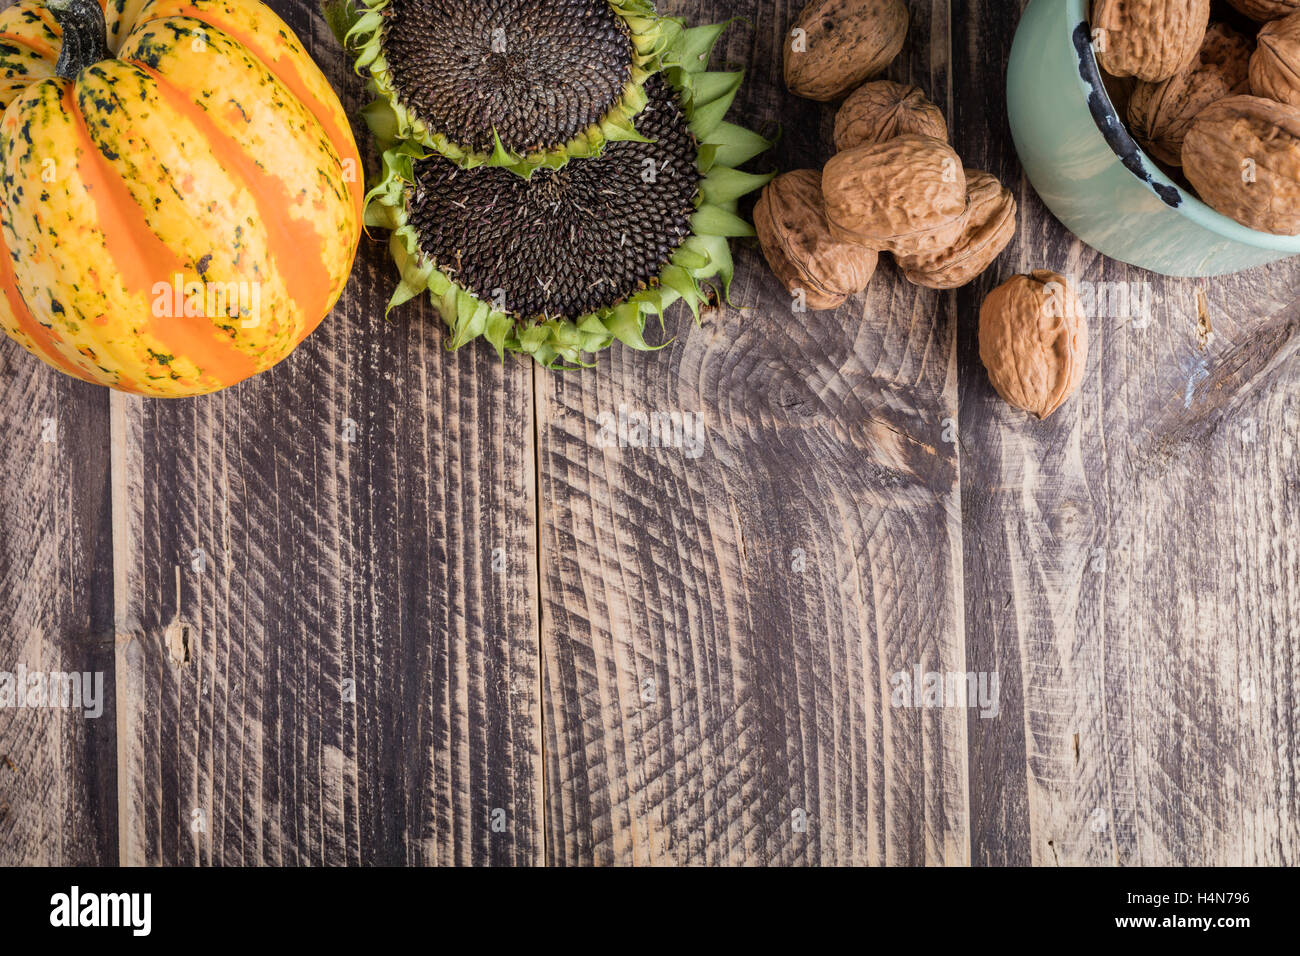 fall autumn thanksgiving decoration harvest wood wooden rustic background text space copy-space text-space colorful - Stock Image